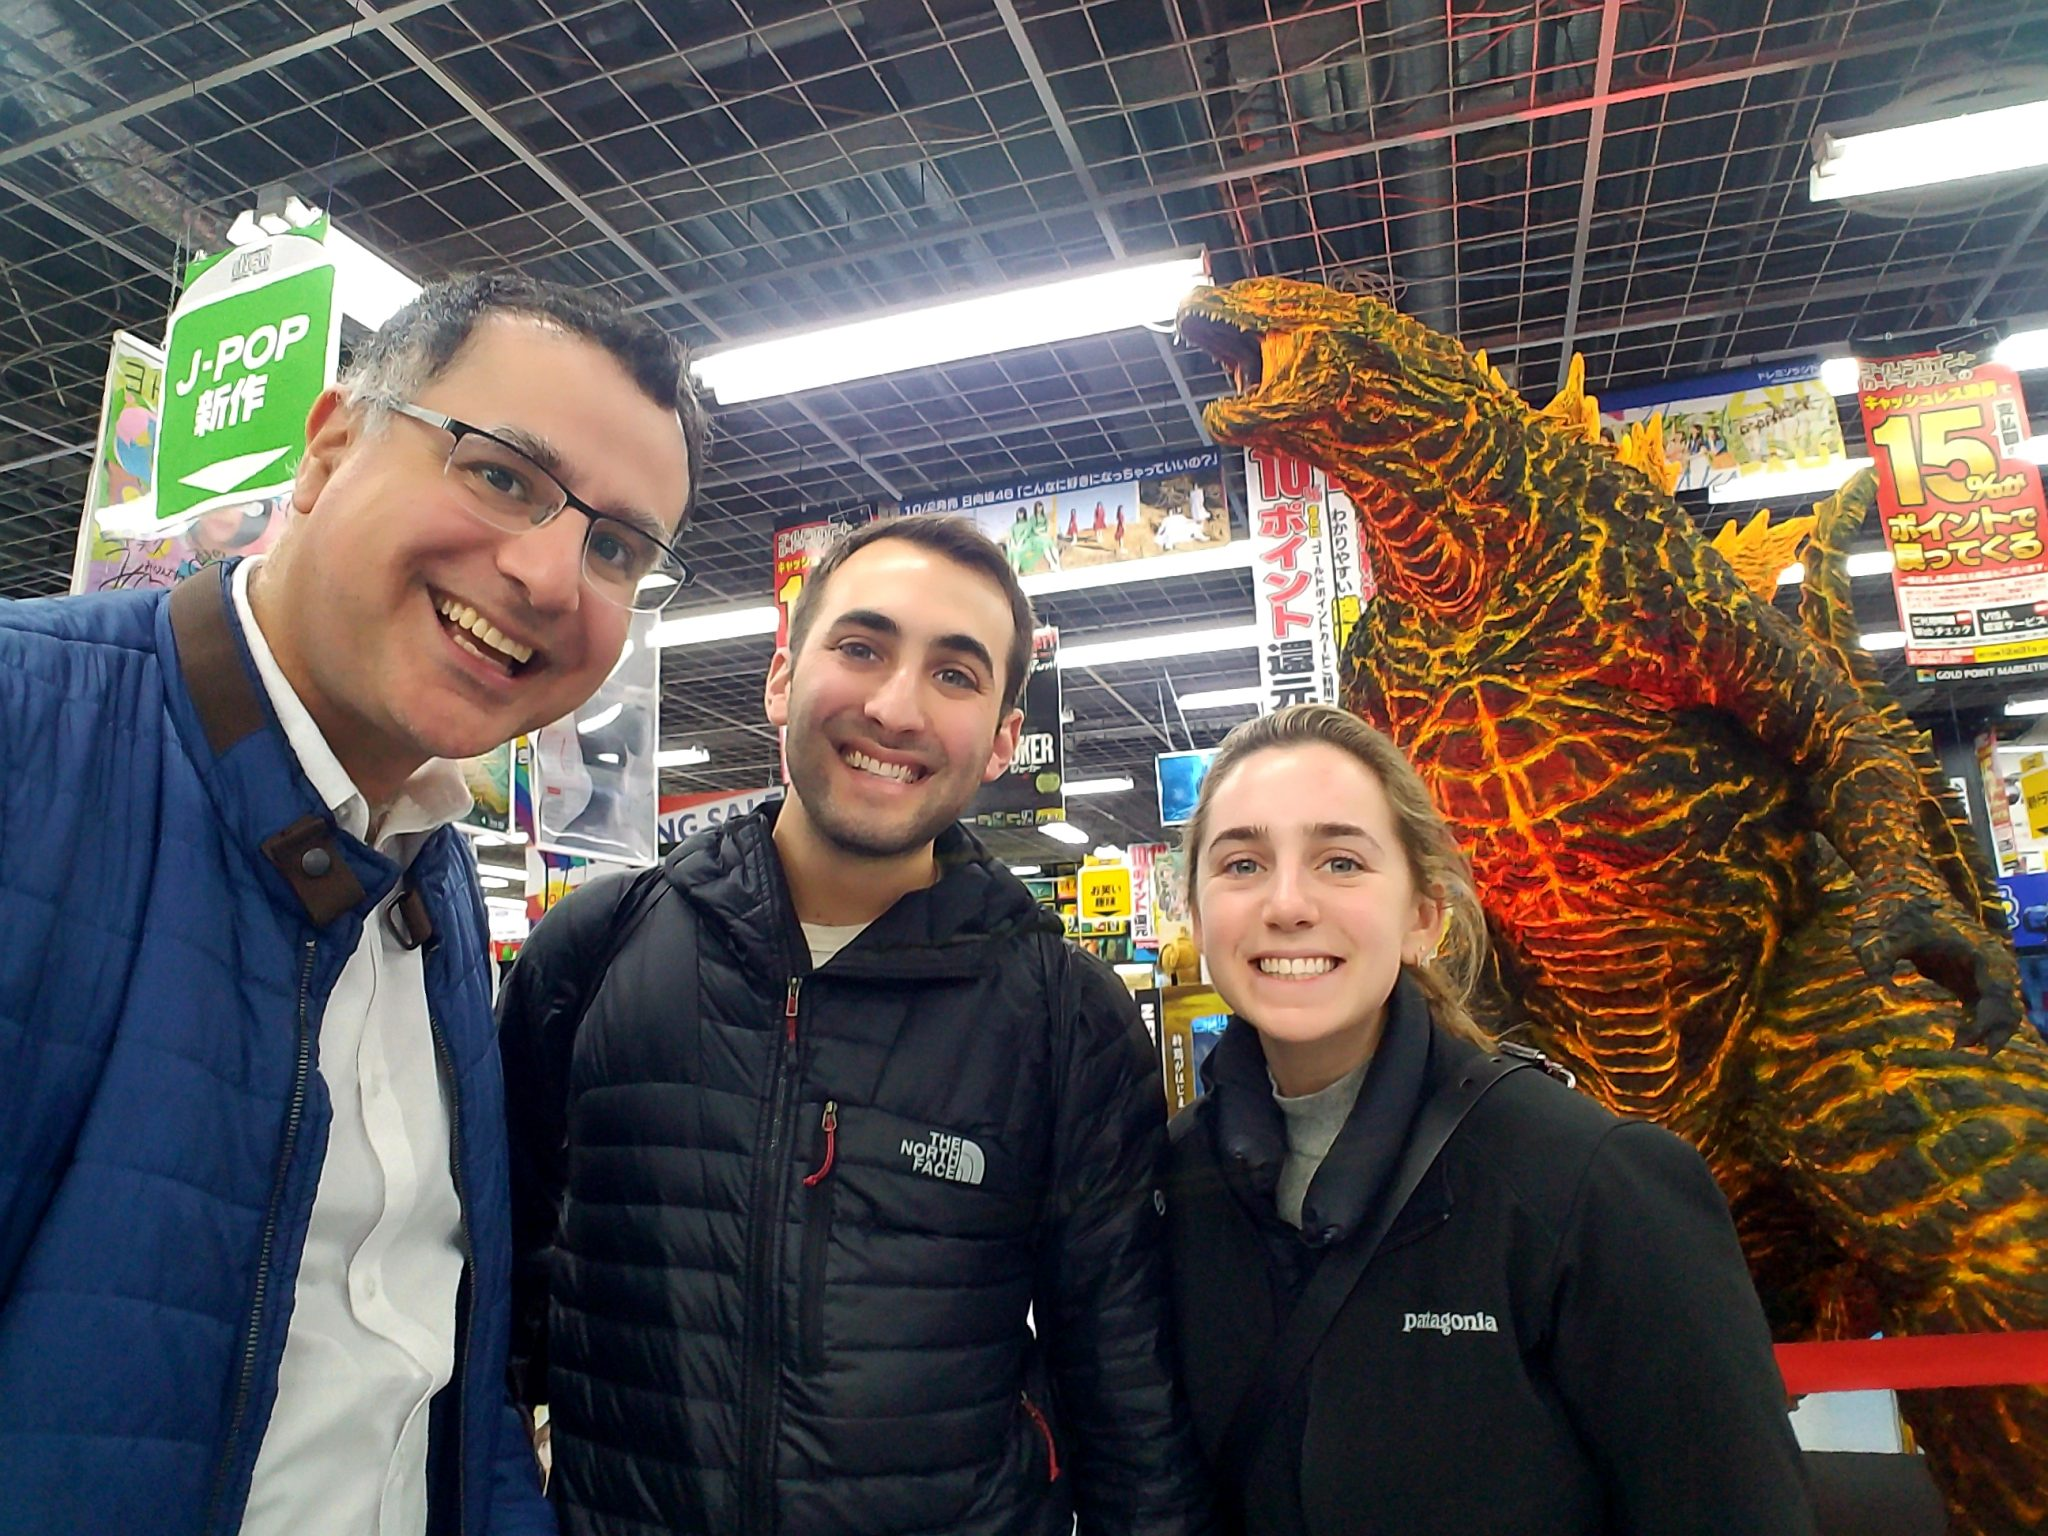 Tokyo Private Tour guests Jake and Talia with Mac and Godzilla